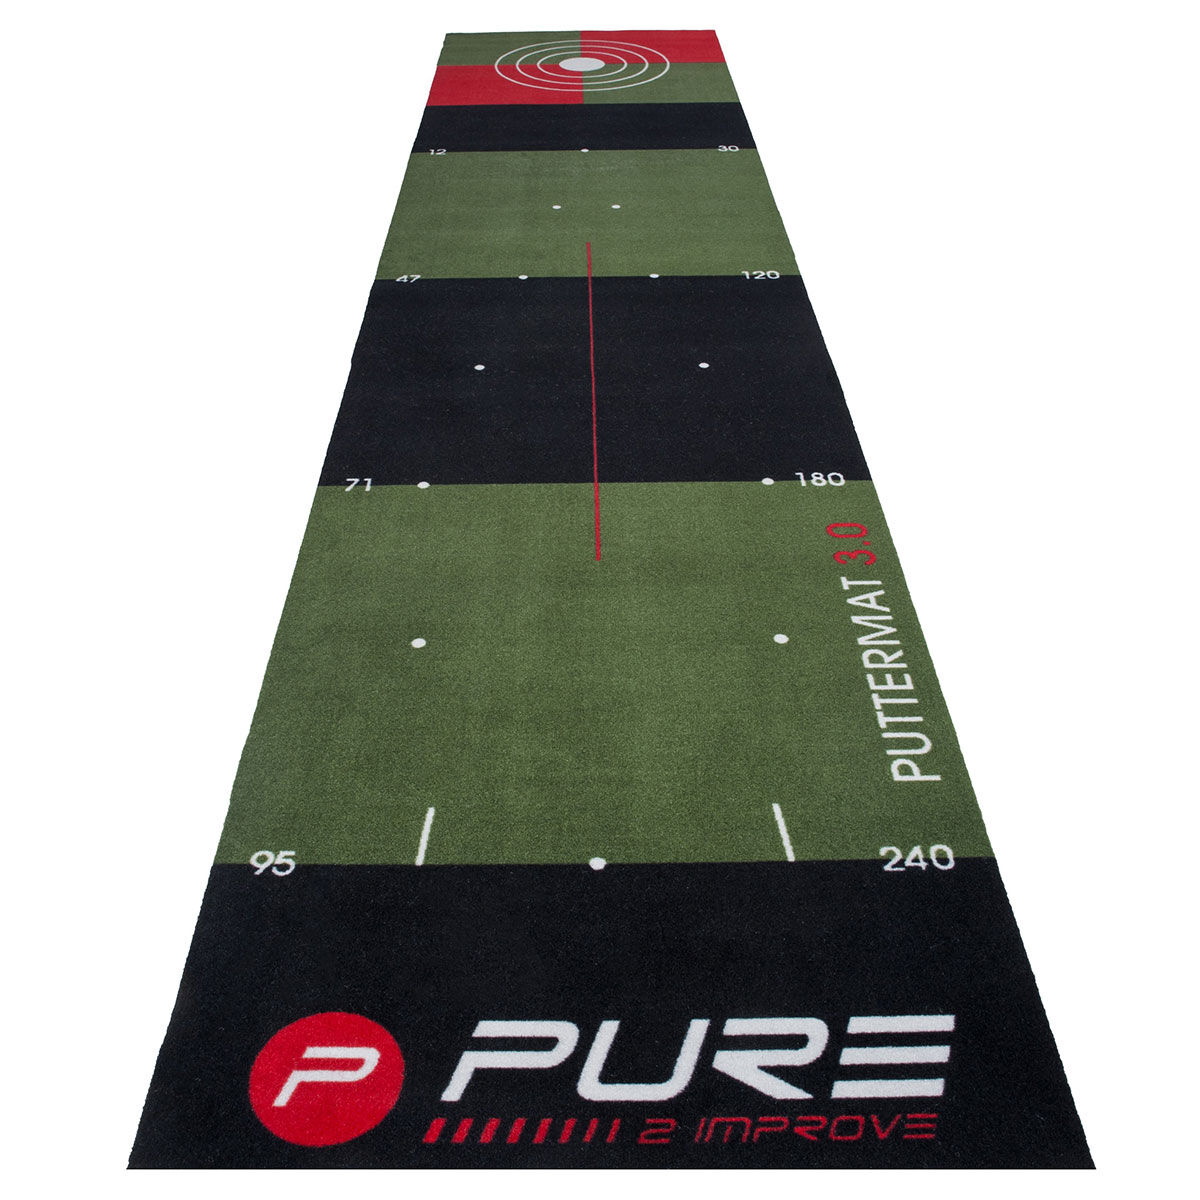 Pure 2 Improve Black and Green Long Lasting 3.0 Putting Golf Mat, Size: 3   American Golf